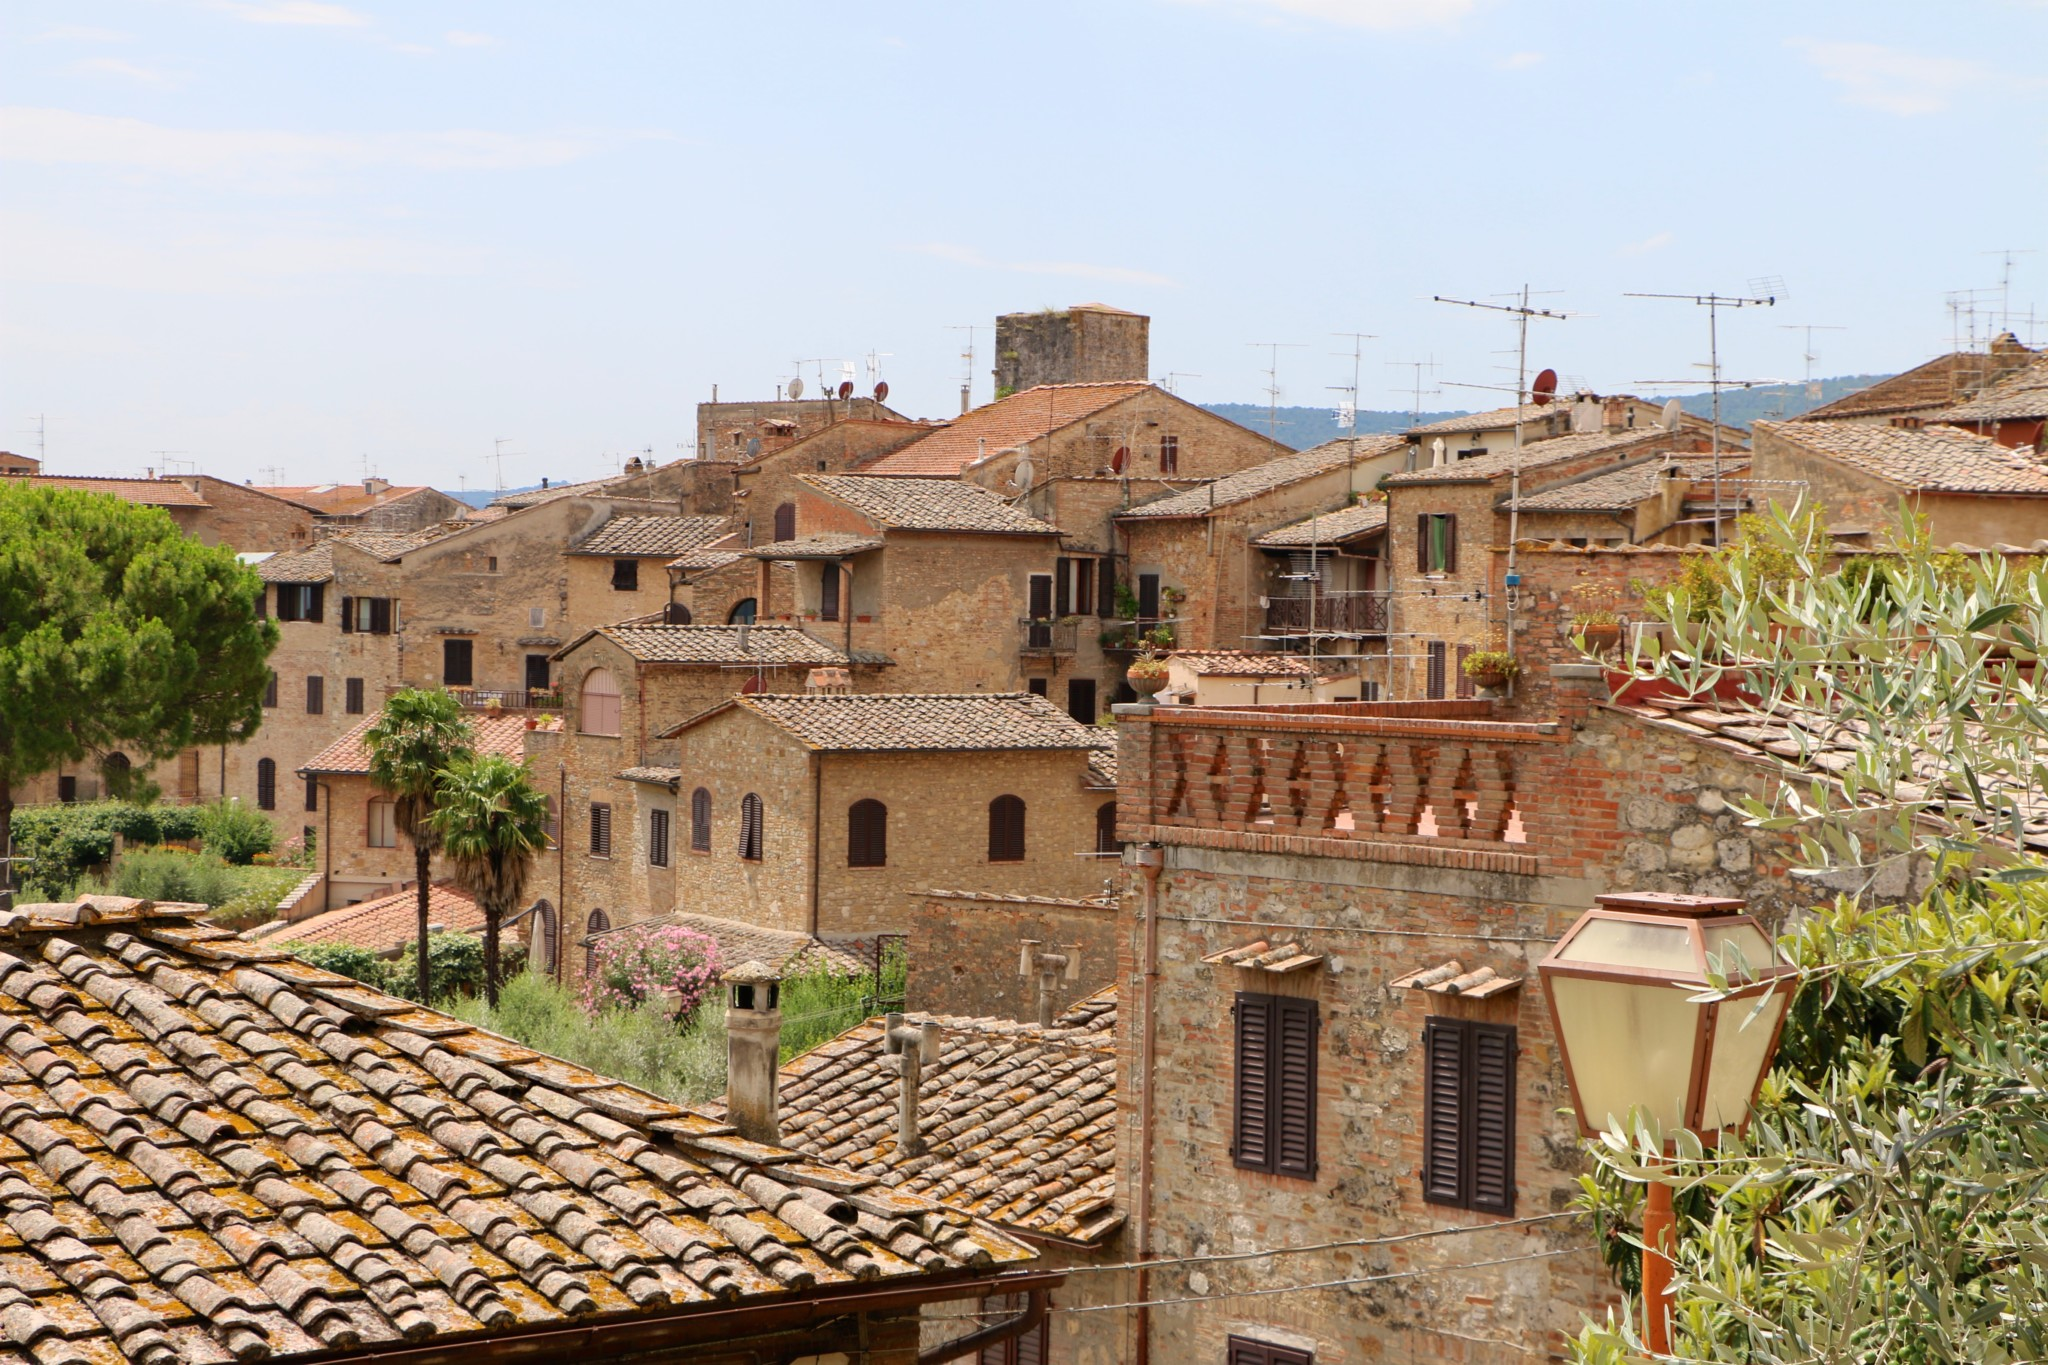 San Gimignano│A Medieval Town in Tuscany